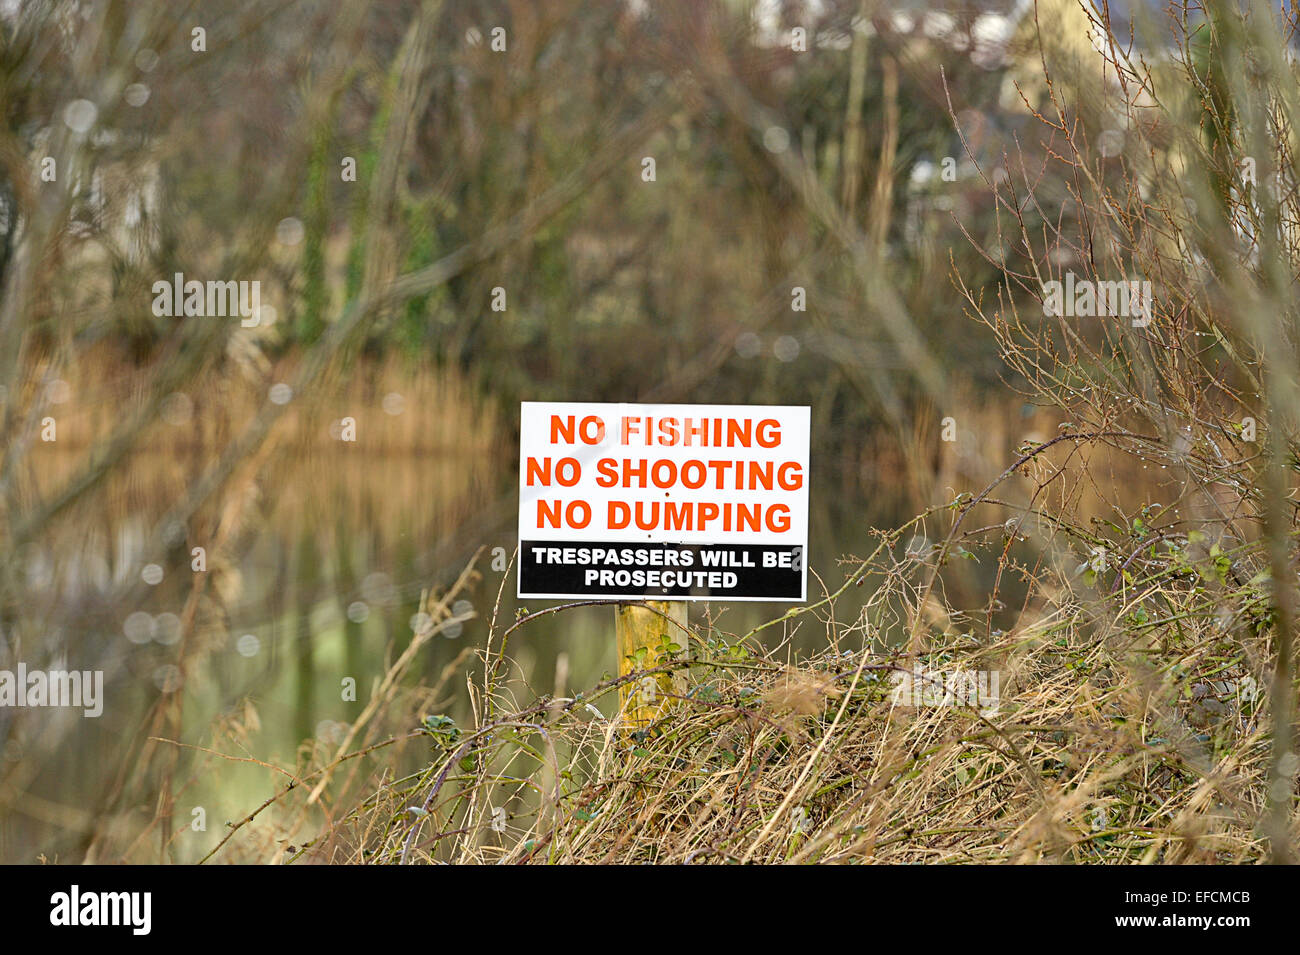 Sign at river's edge, Burnfoot, County Donegal, Ireland reads No Fishing, No Shooting, No Dumping - Stock Image